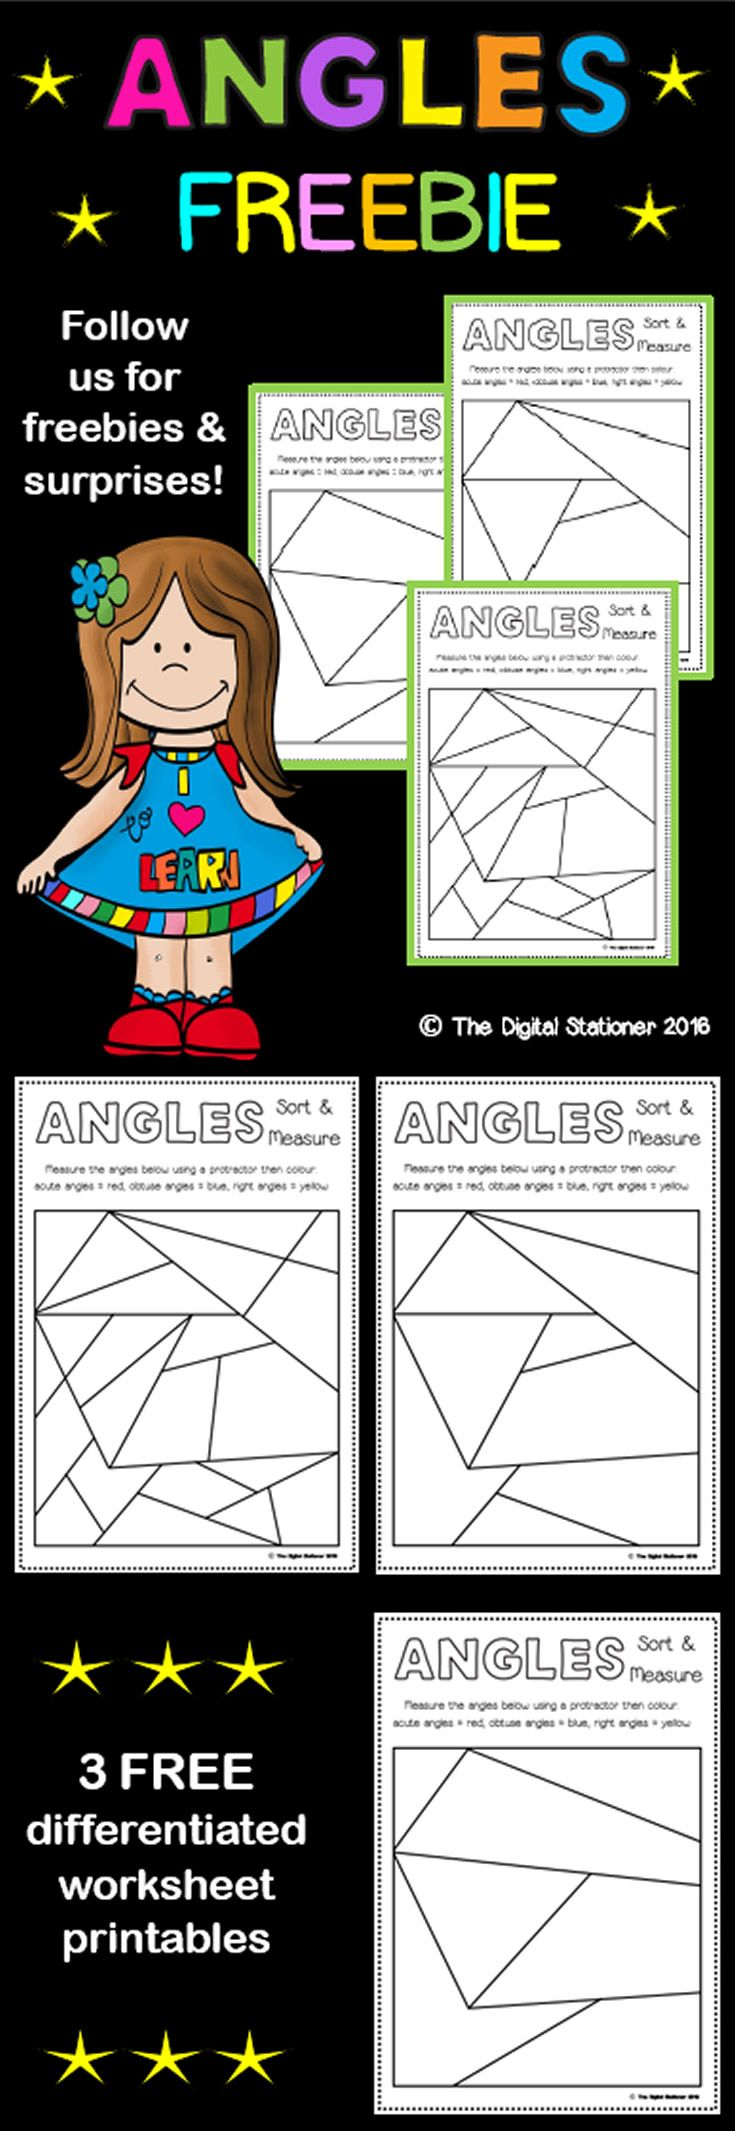 Brave New World Worksheets Excel Print And Go Color By Angle Protractor Activity Common Core  Tracing Words Worksheets with Worksheets For Grade 6 Math Word Free Measuring Angles Worksheets Printables  Teaching Resources 4th Grade Bar Graph Worksheets